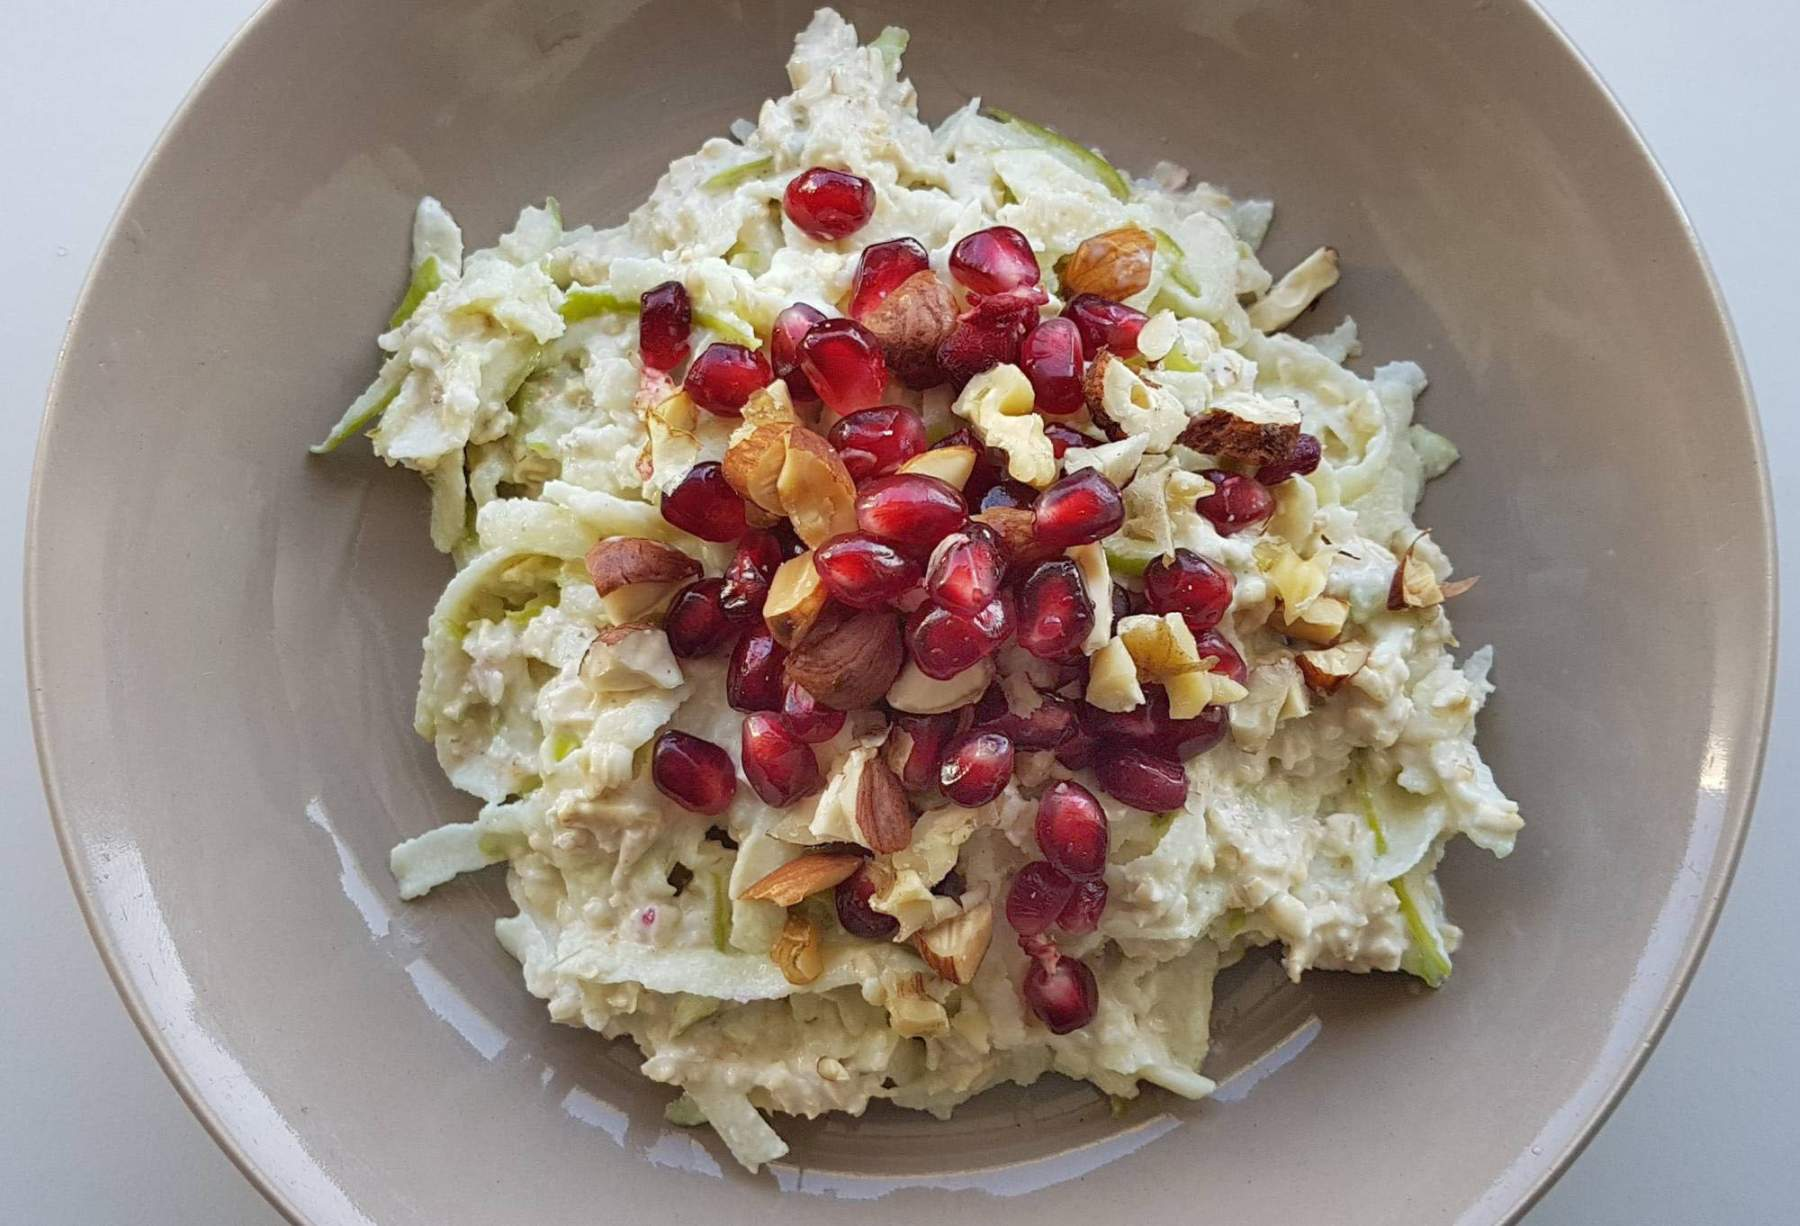 Home-made bircher muesli with apple, almonds and pomegranate